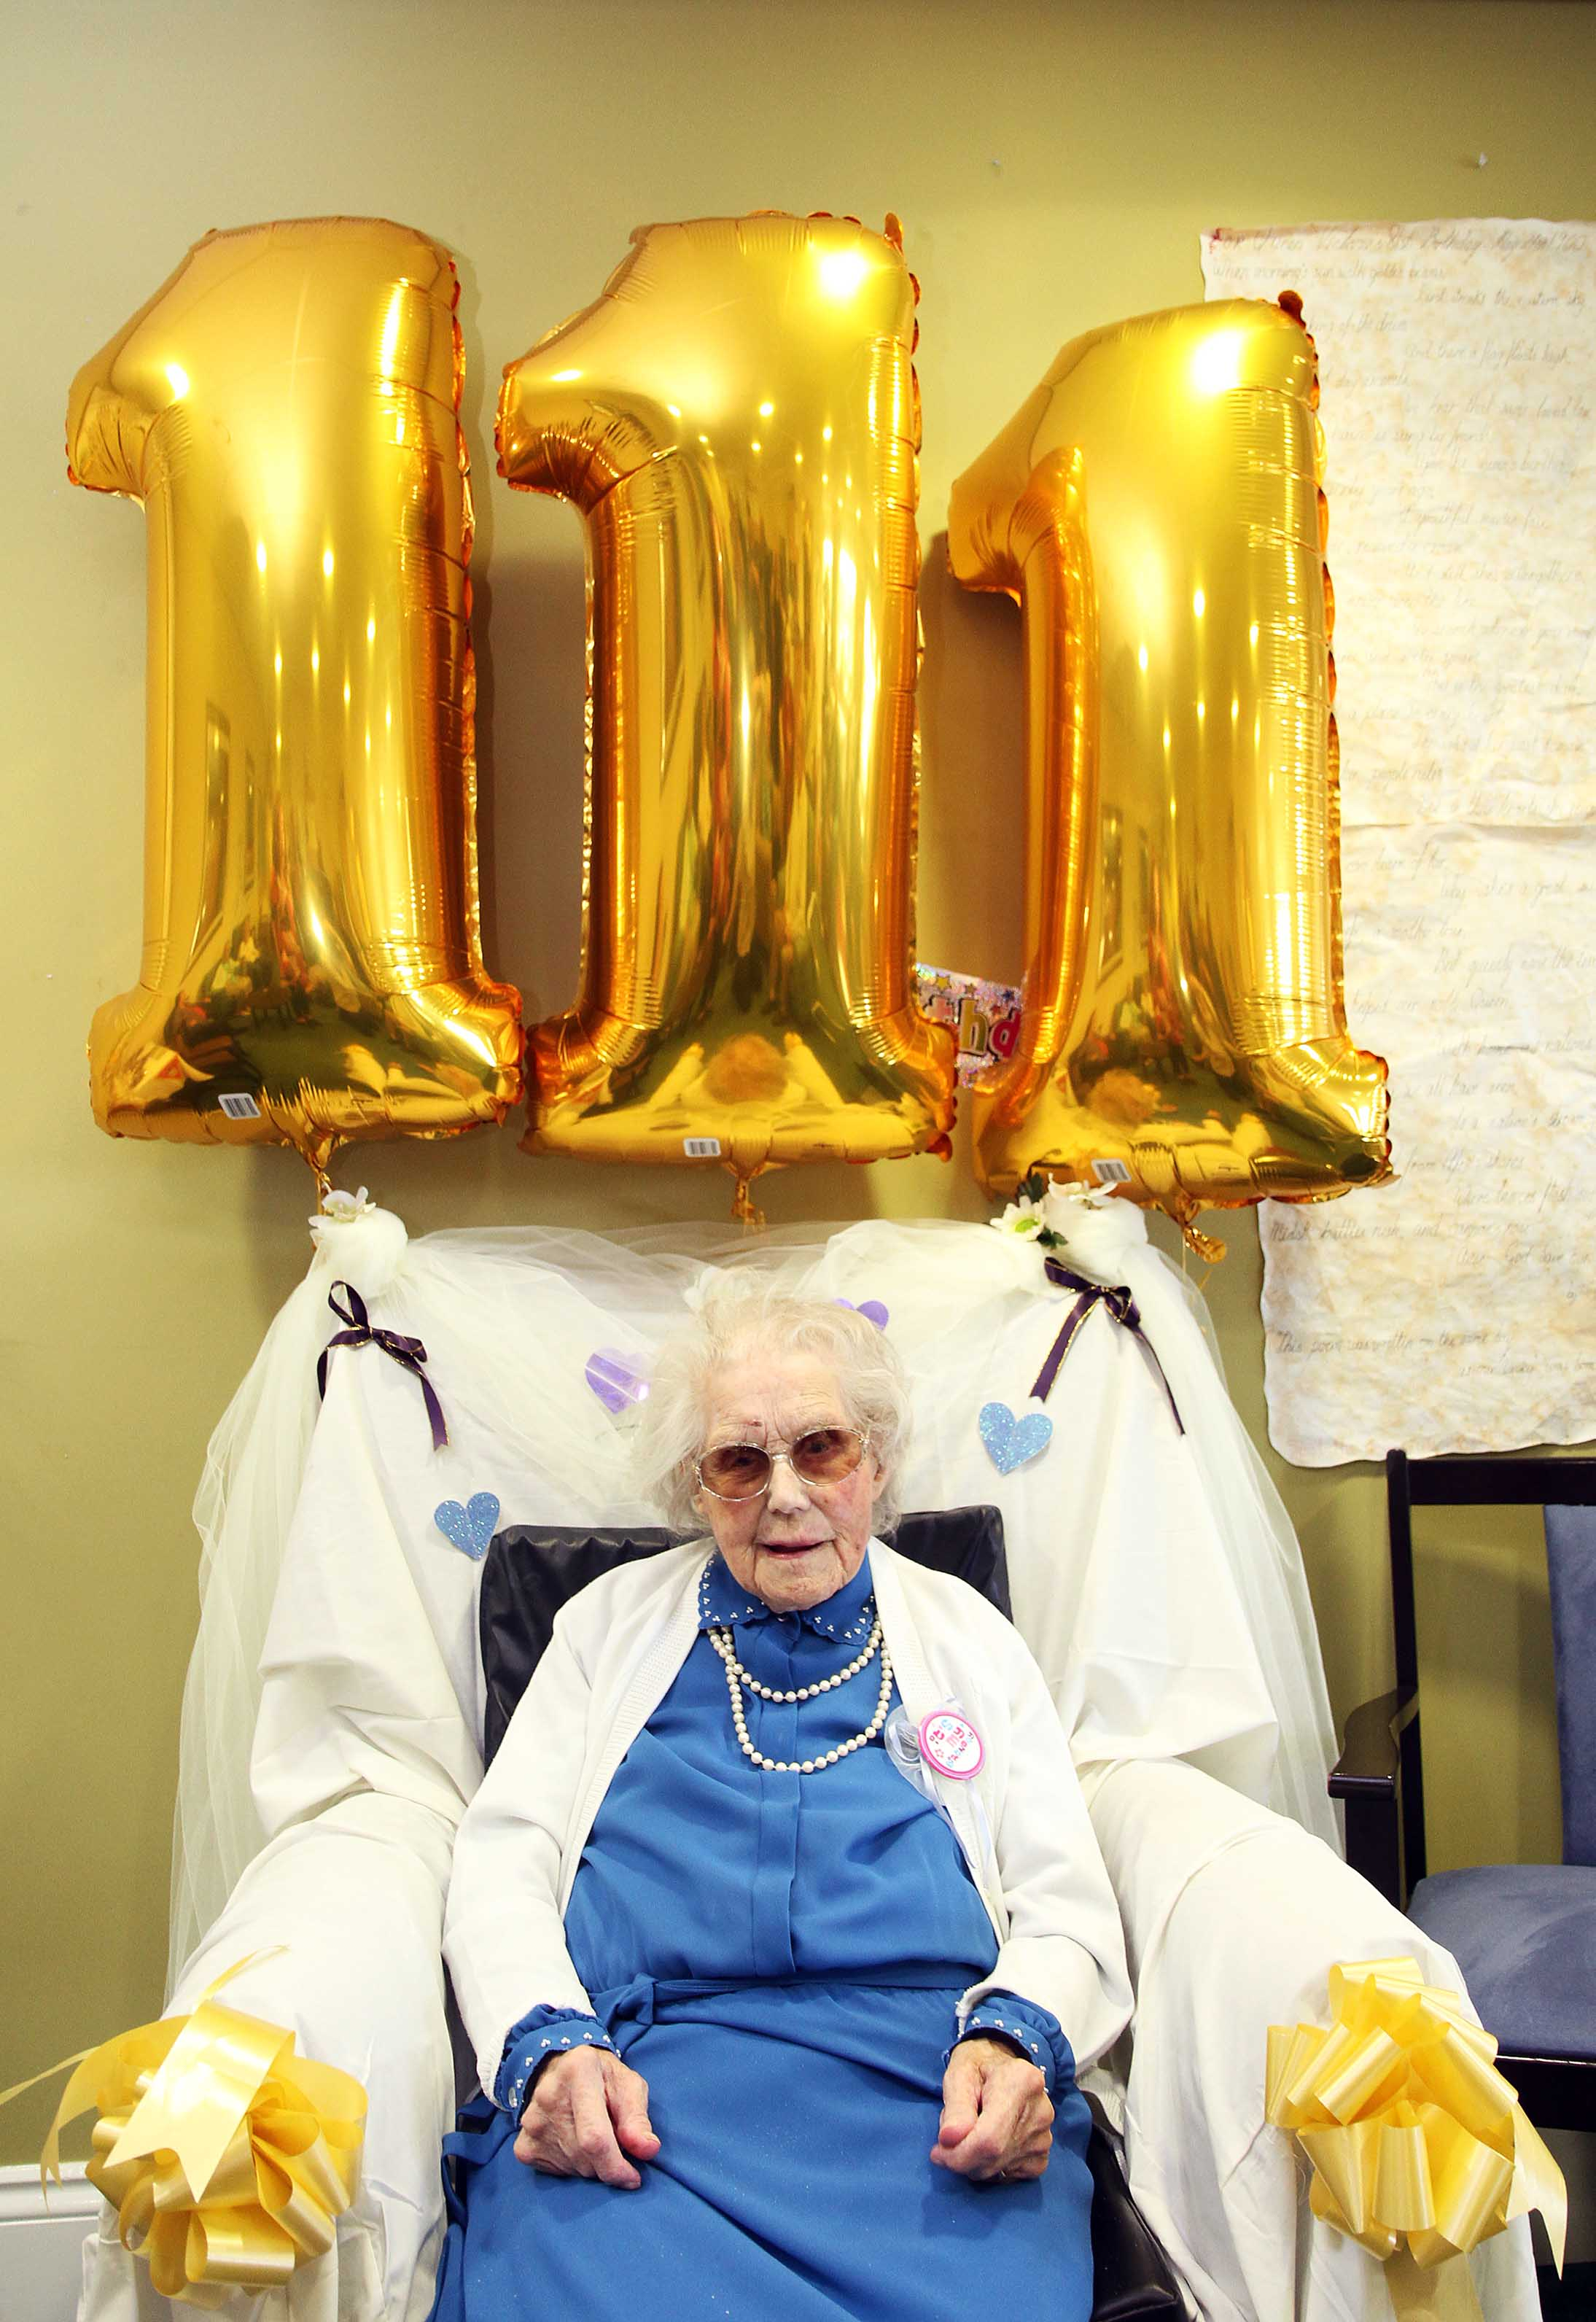 111-year-old women celebrates birthday